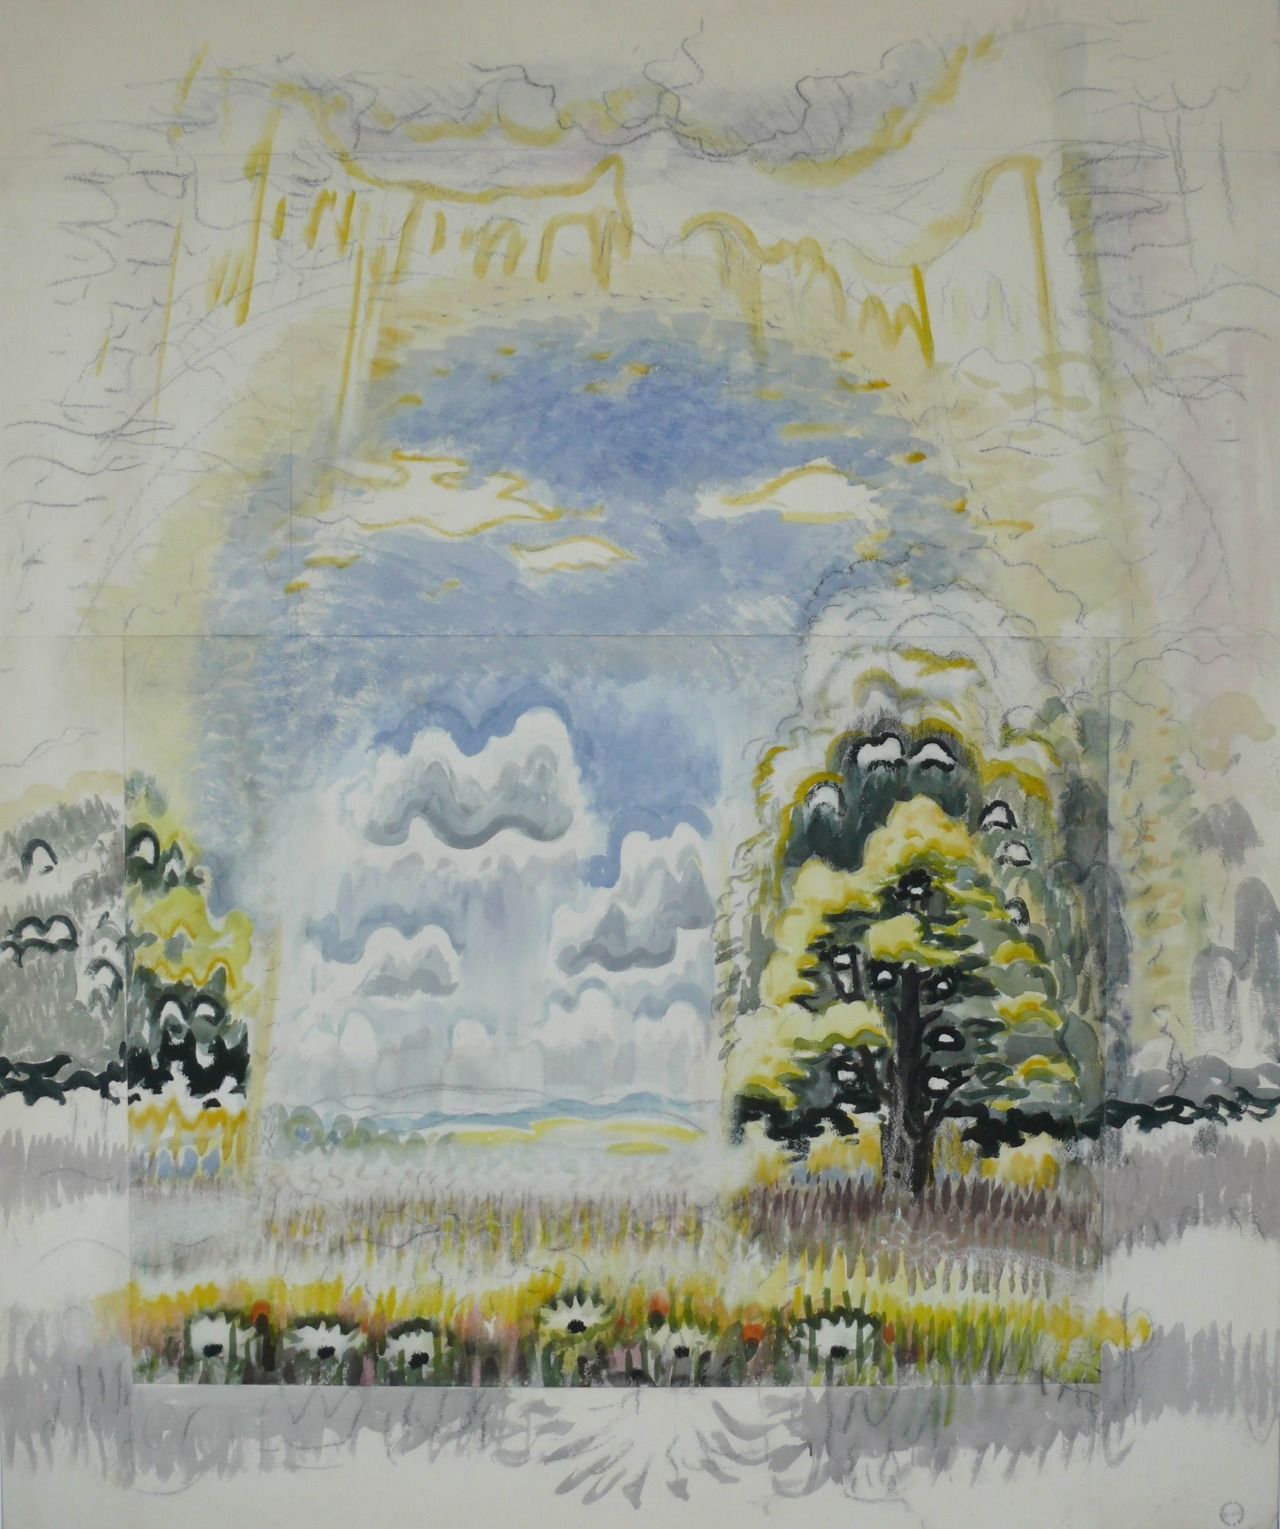 Charles Ephraim Burchfield (1893-1967) Blue Dome of June (1955-1963) watercolor. charcoal and white chalk on joined paper 60 x 50 in